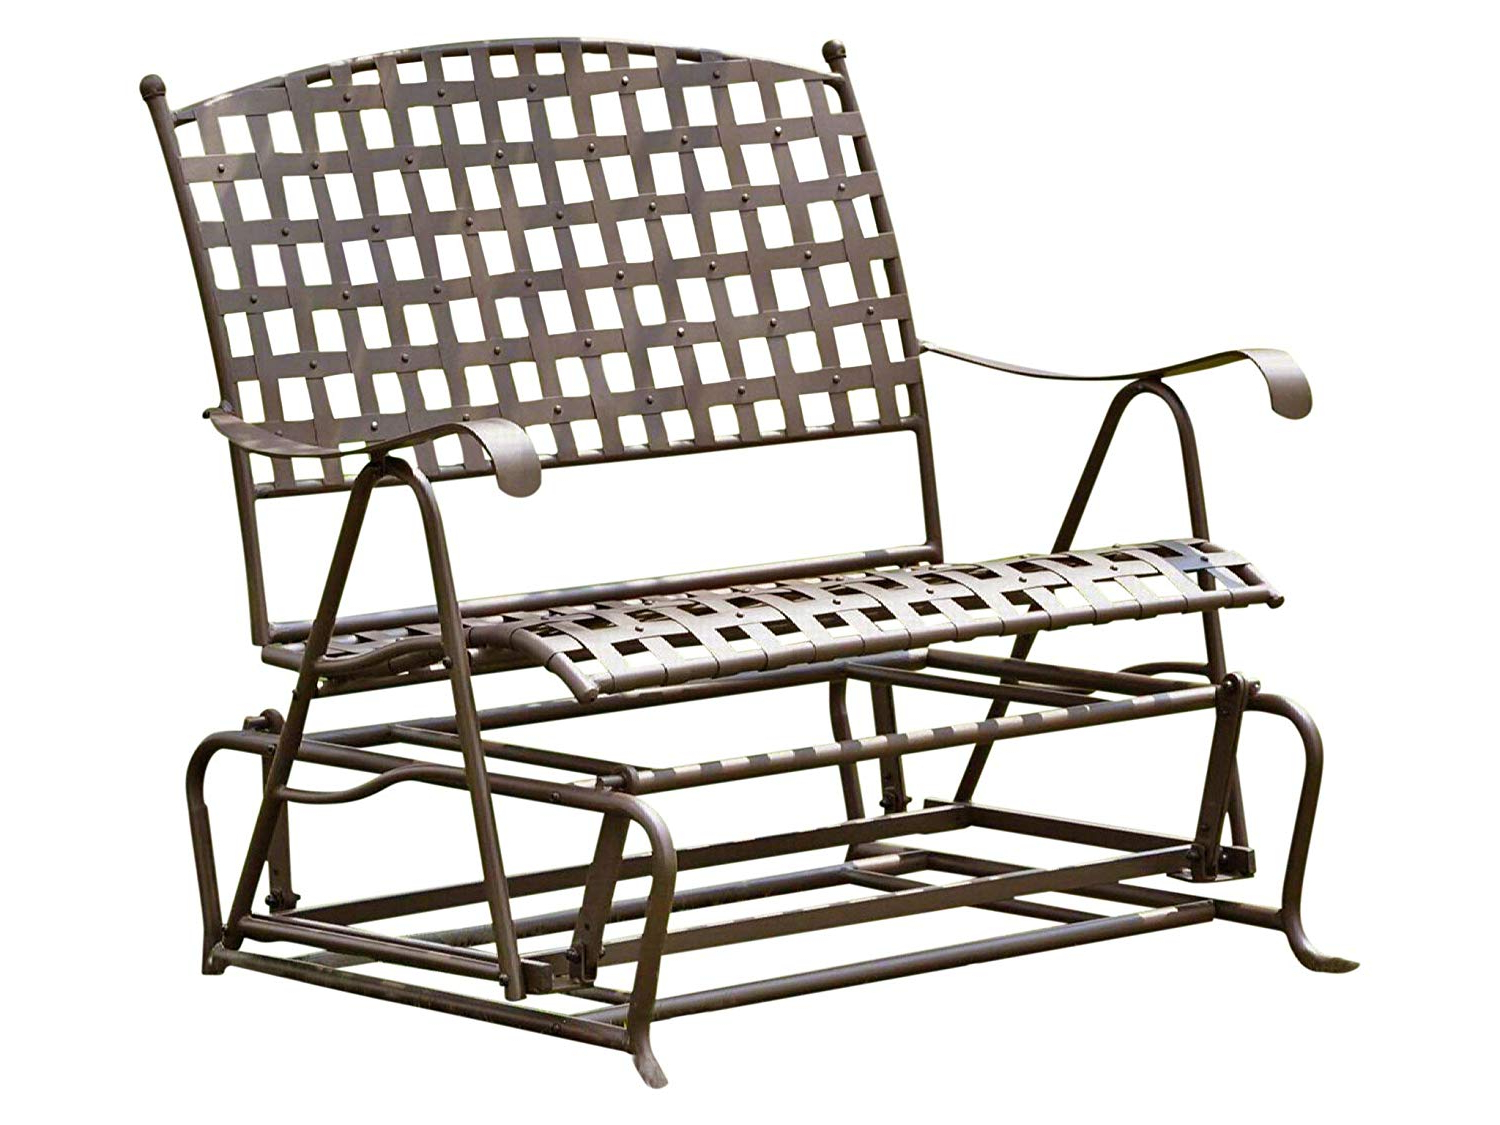 2 Person Antique Black Iron Outdoor Gliders Within Well Known International Caravan, Santa Fe Iron Porch Double Glider Garden Bench (View 11 of 30)